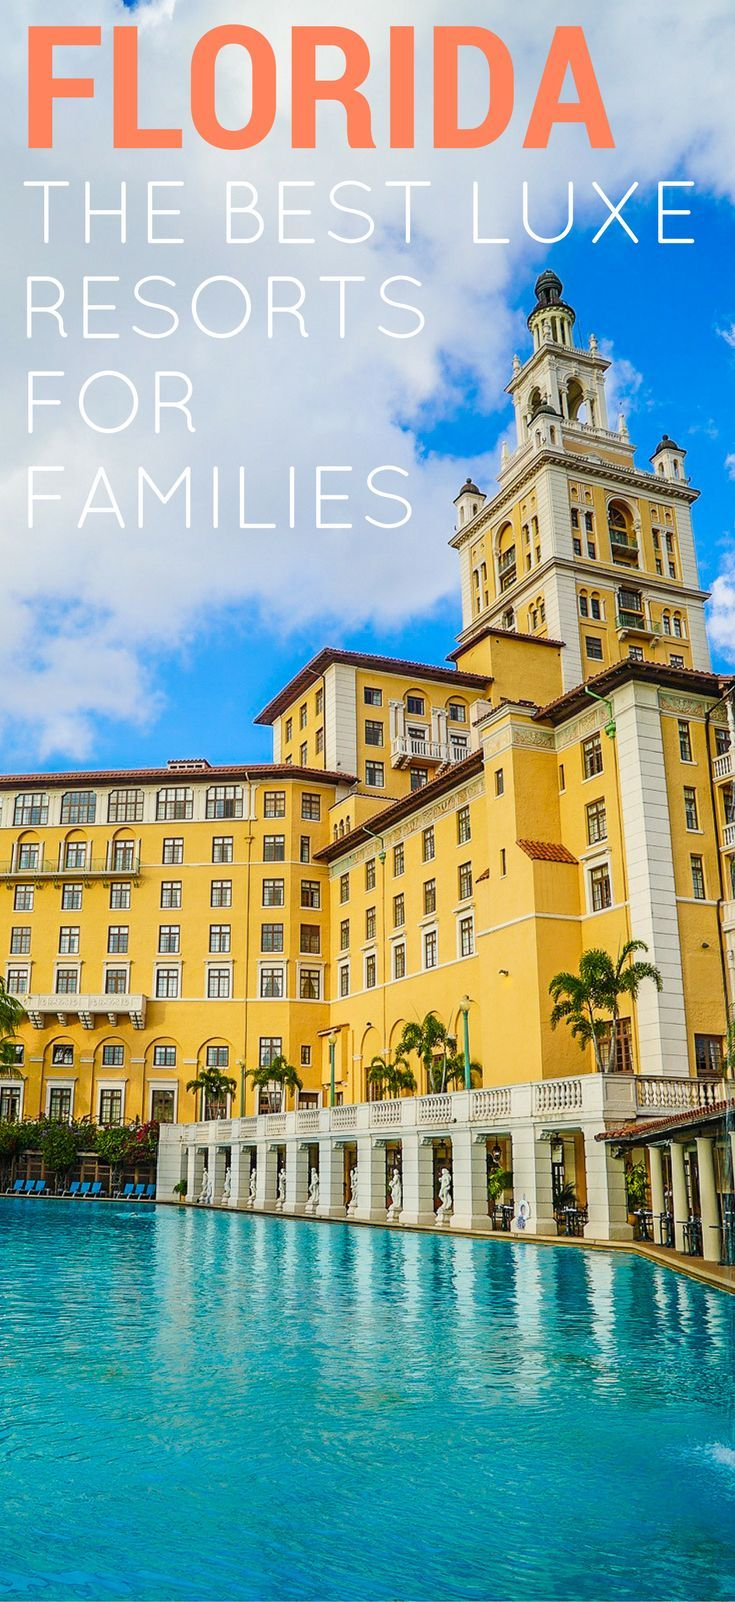 We've reviewed some of the best luxury resorts for families in Palm Beach, the Florida Keys, Miami, Orlando, and Naples for your next family vacation.